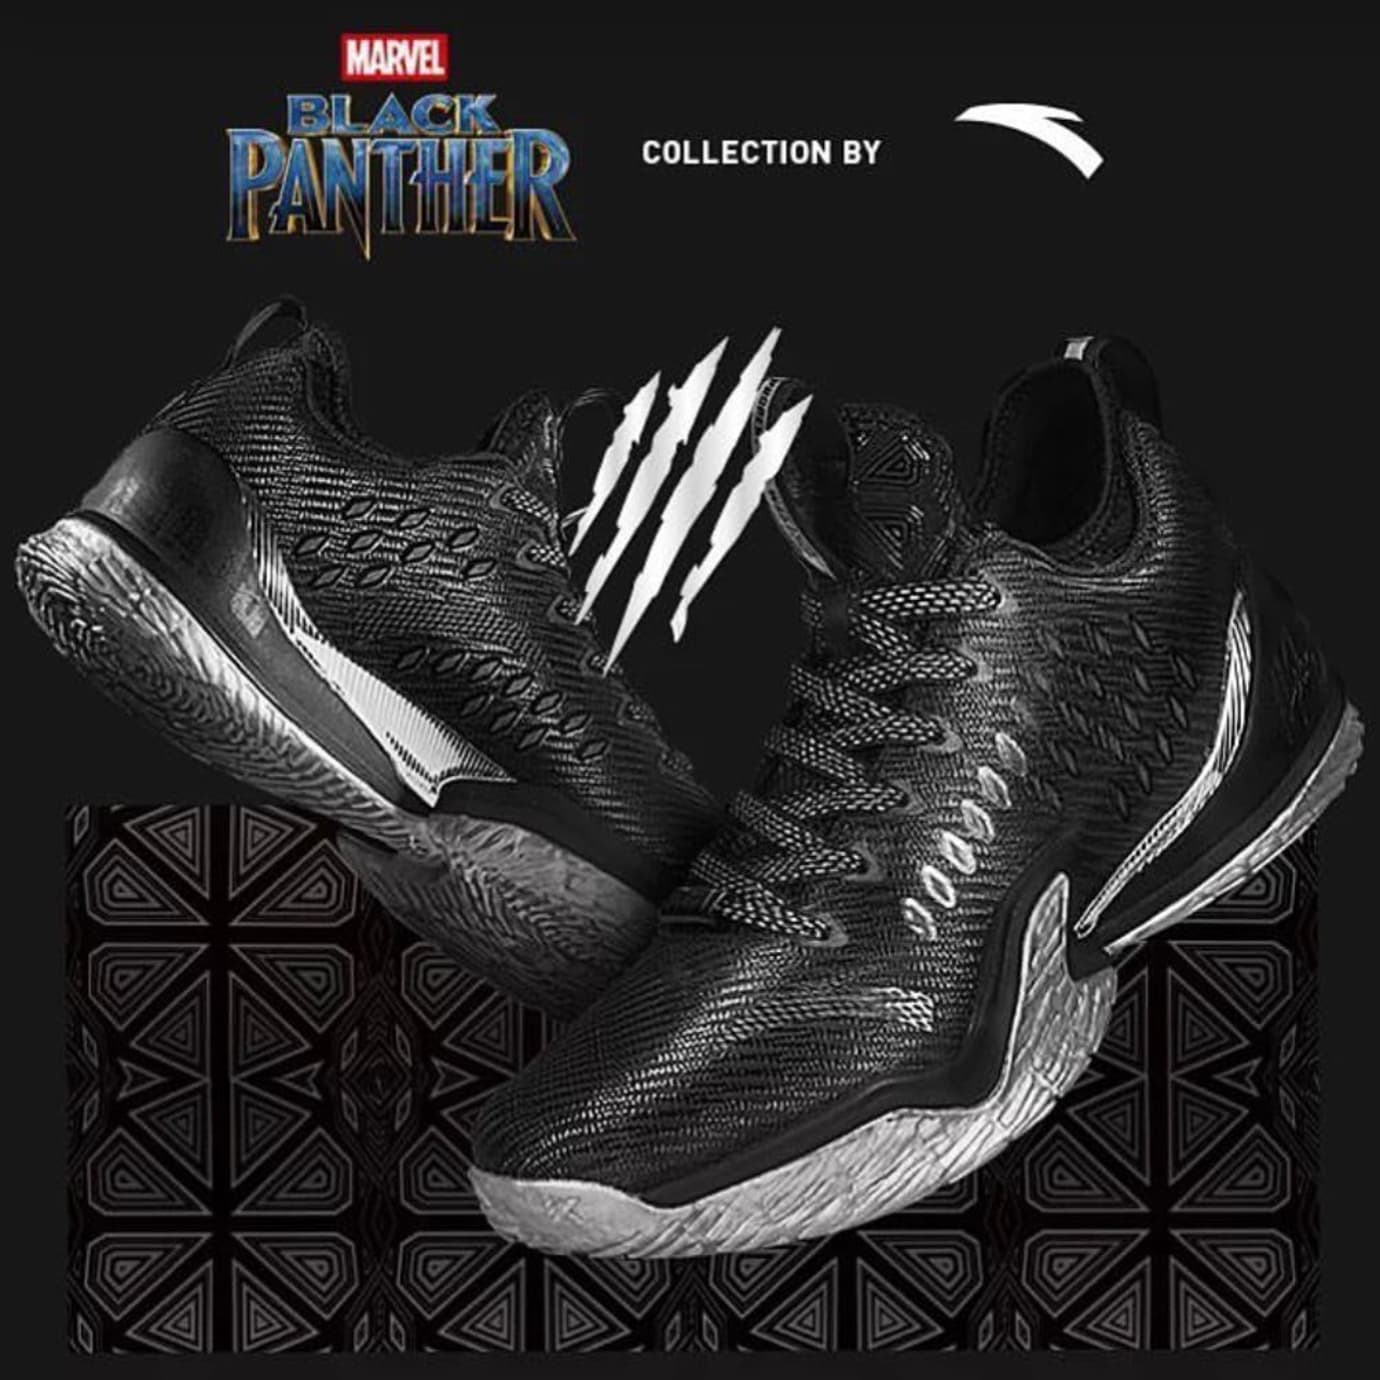 Anta KT3 Low Black Panther